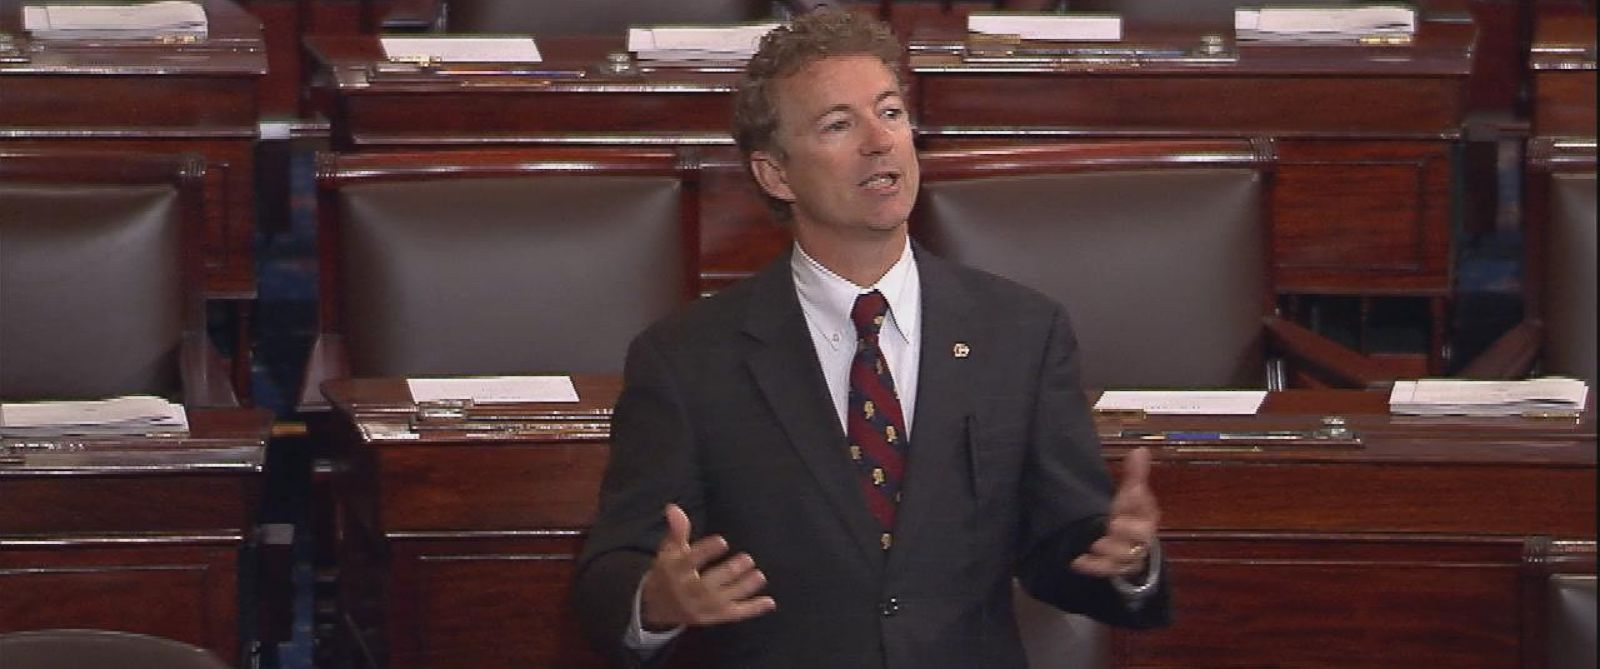 PHOTO: Sen. Rand Paul gives an extended speech opposing the PATRIOT Act on the Senate floor in Washington, May 20, 2015.